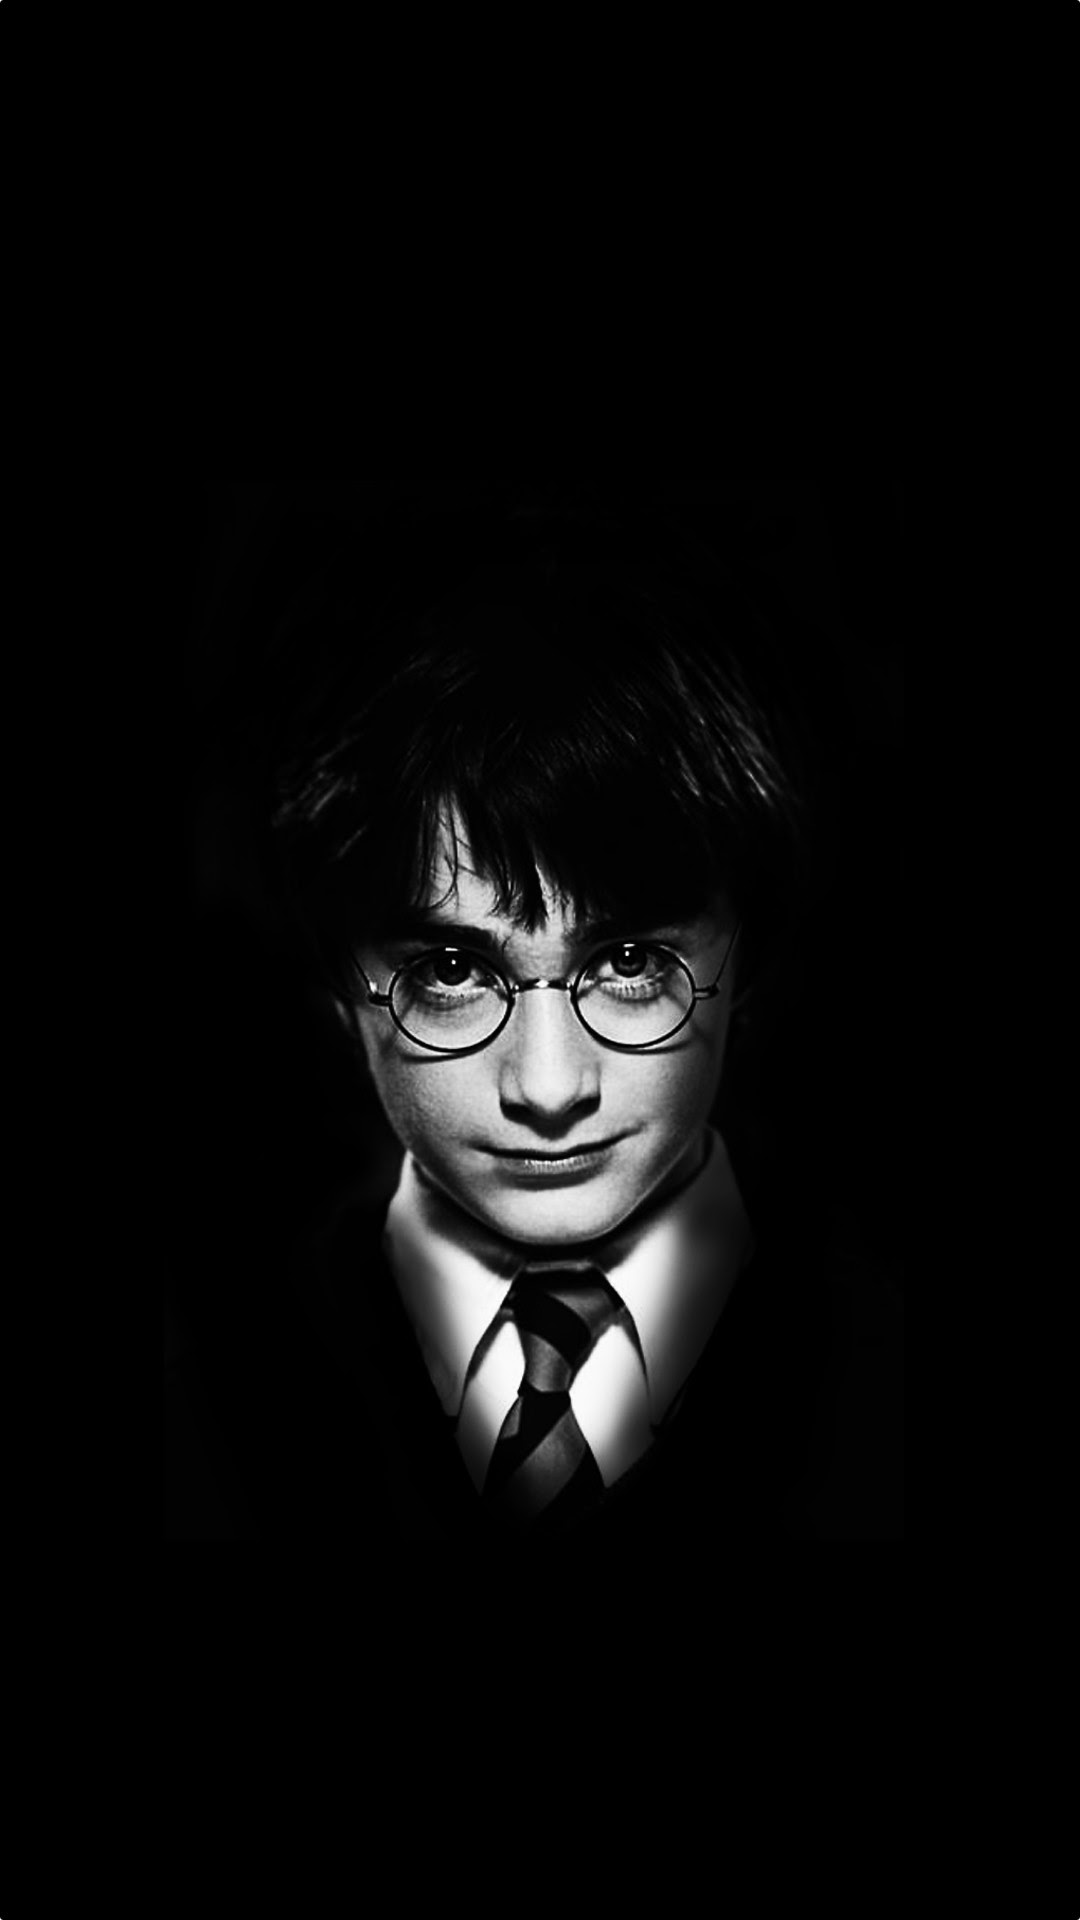 Harry Potter Wallpaper Iphone 71 Images